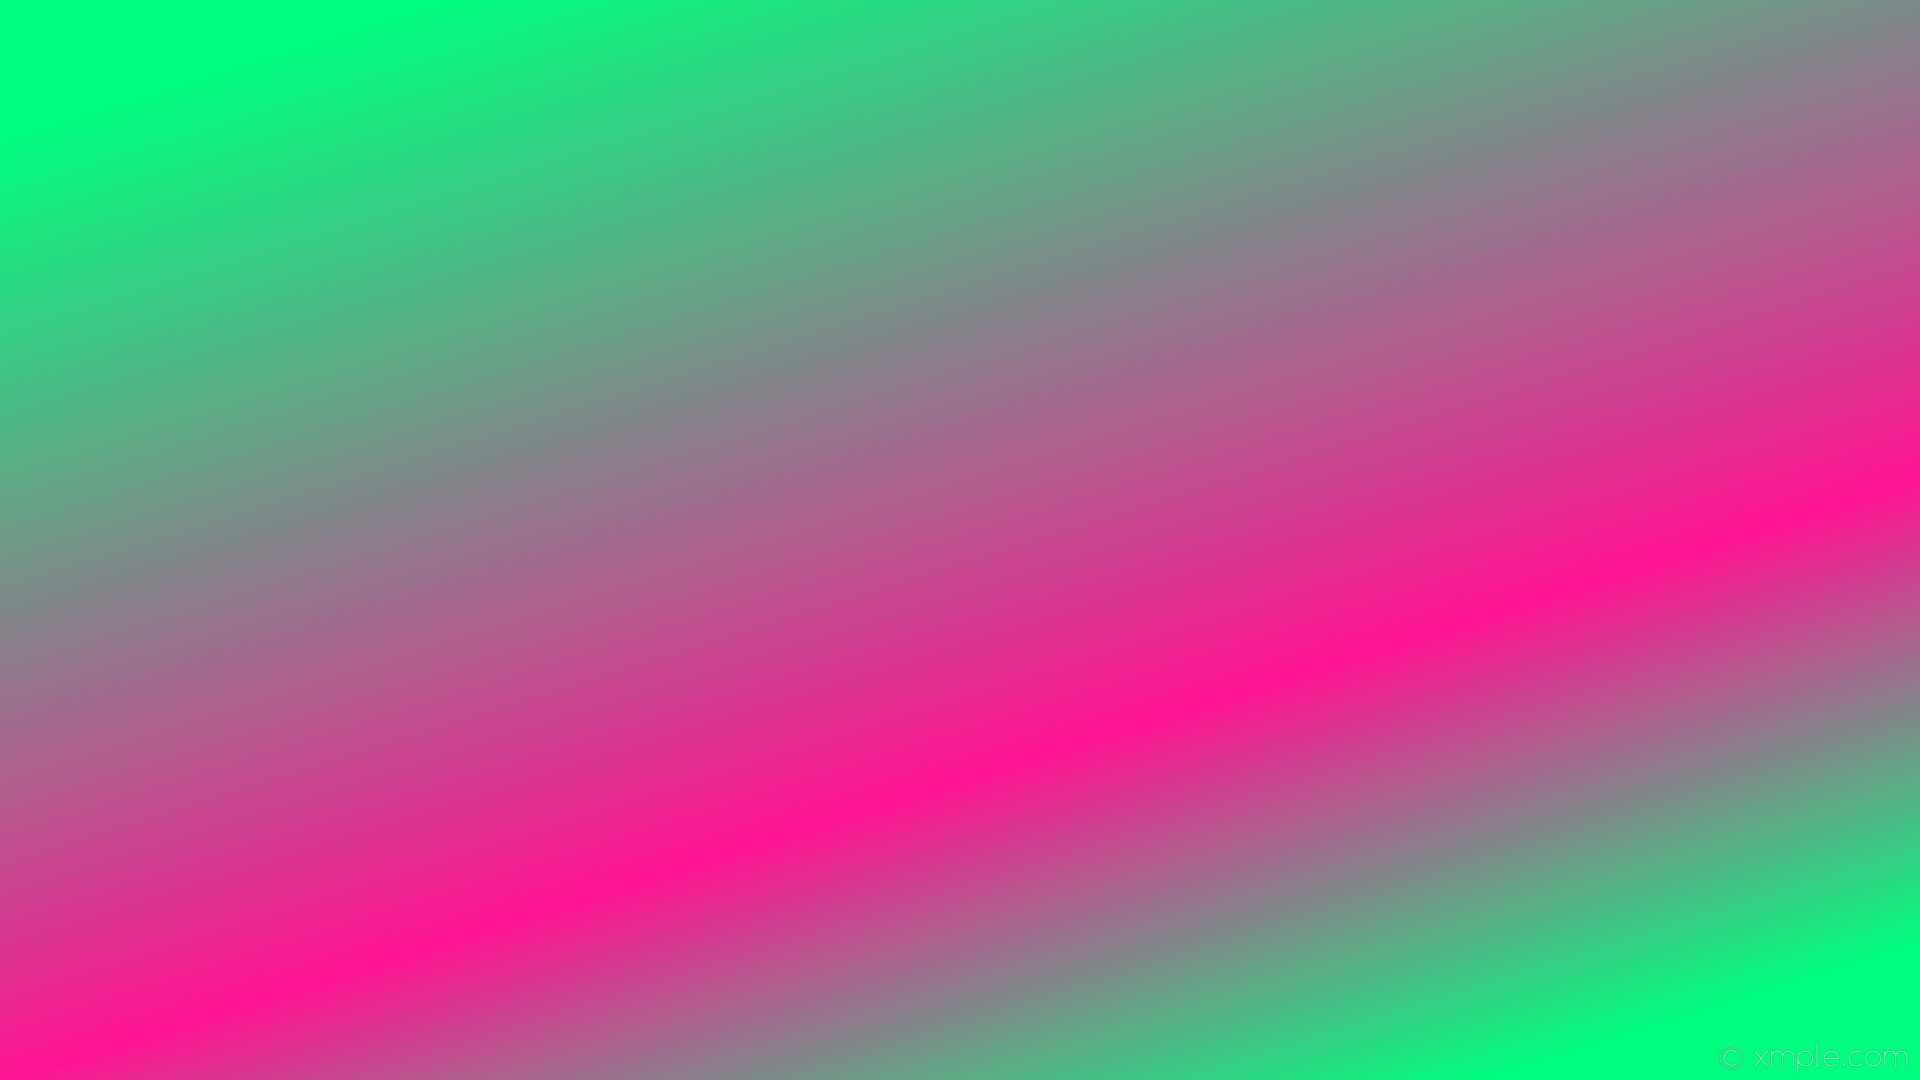 Green And Pink Wallpaper 65 Images